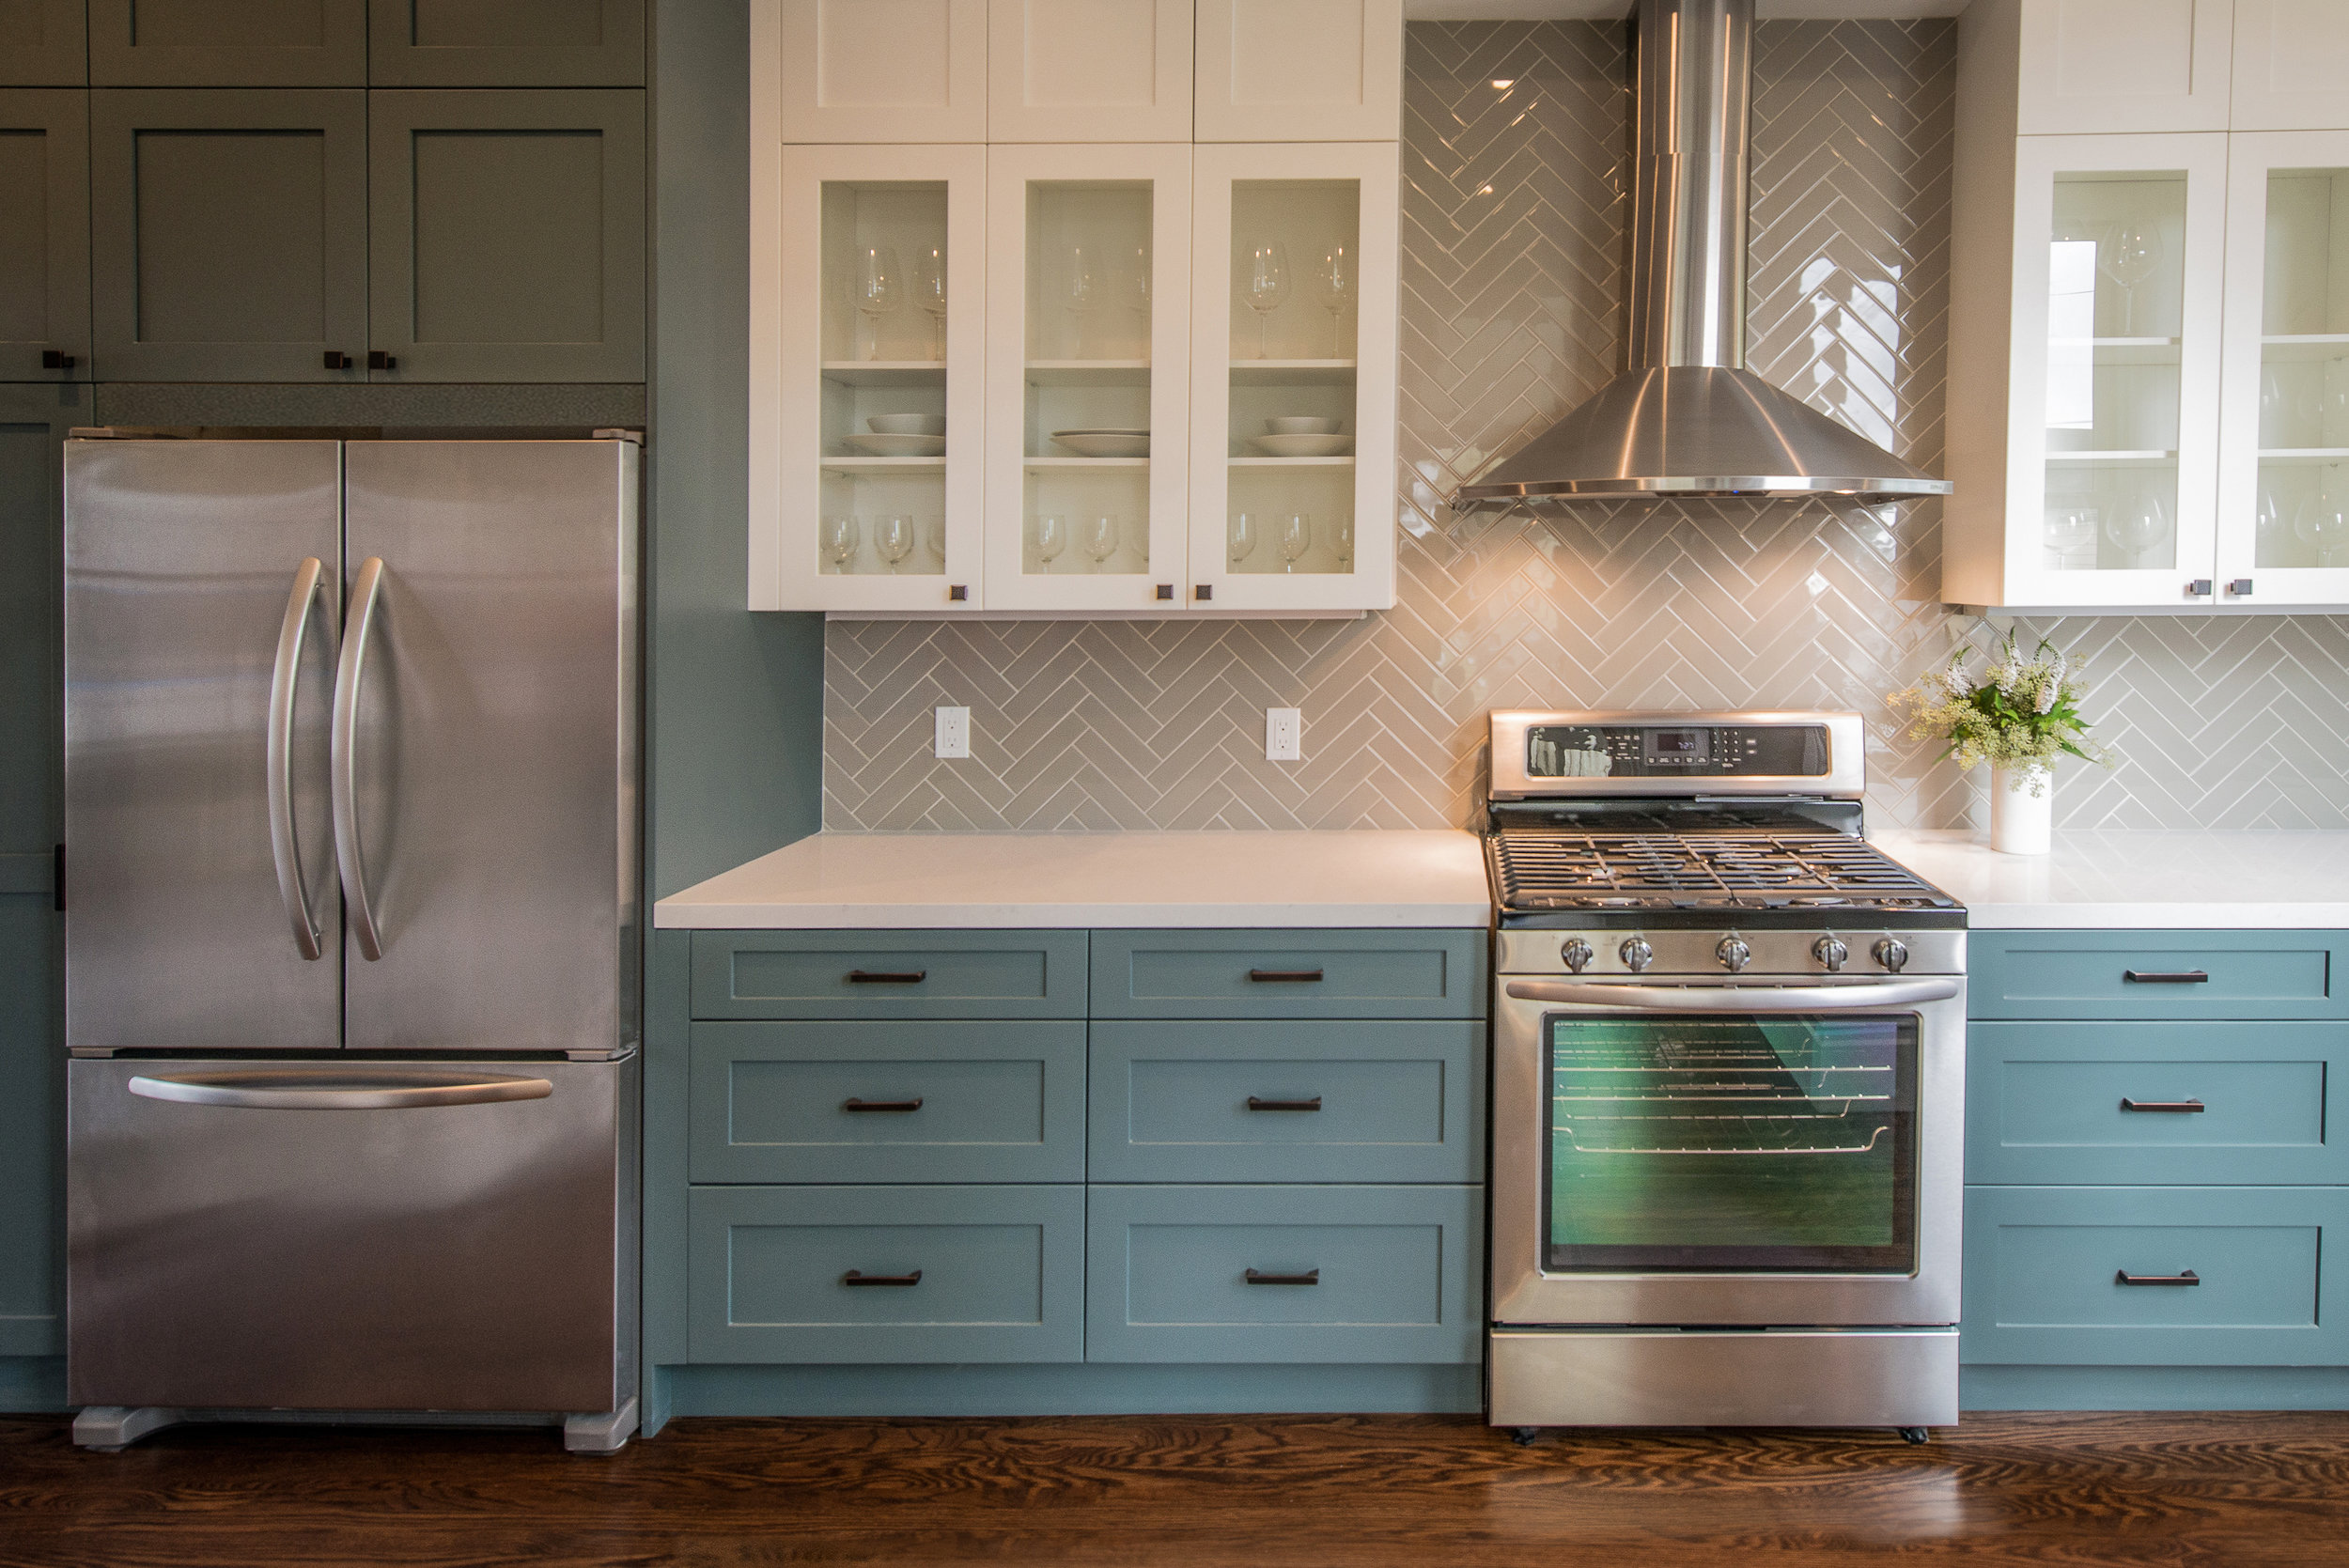 Modern Kitchen with Teal Base Cabinets